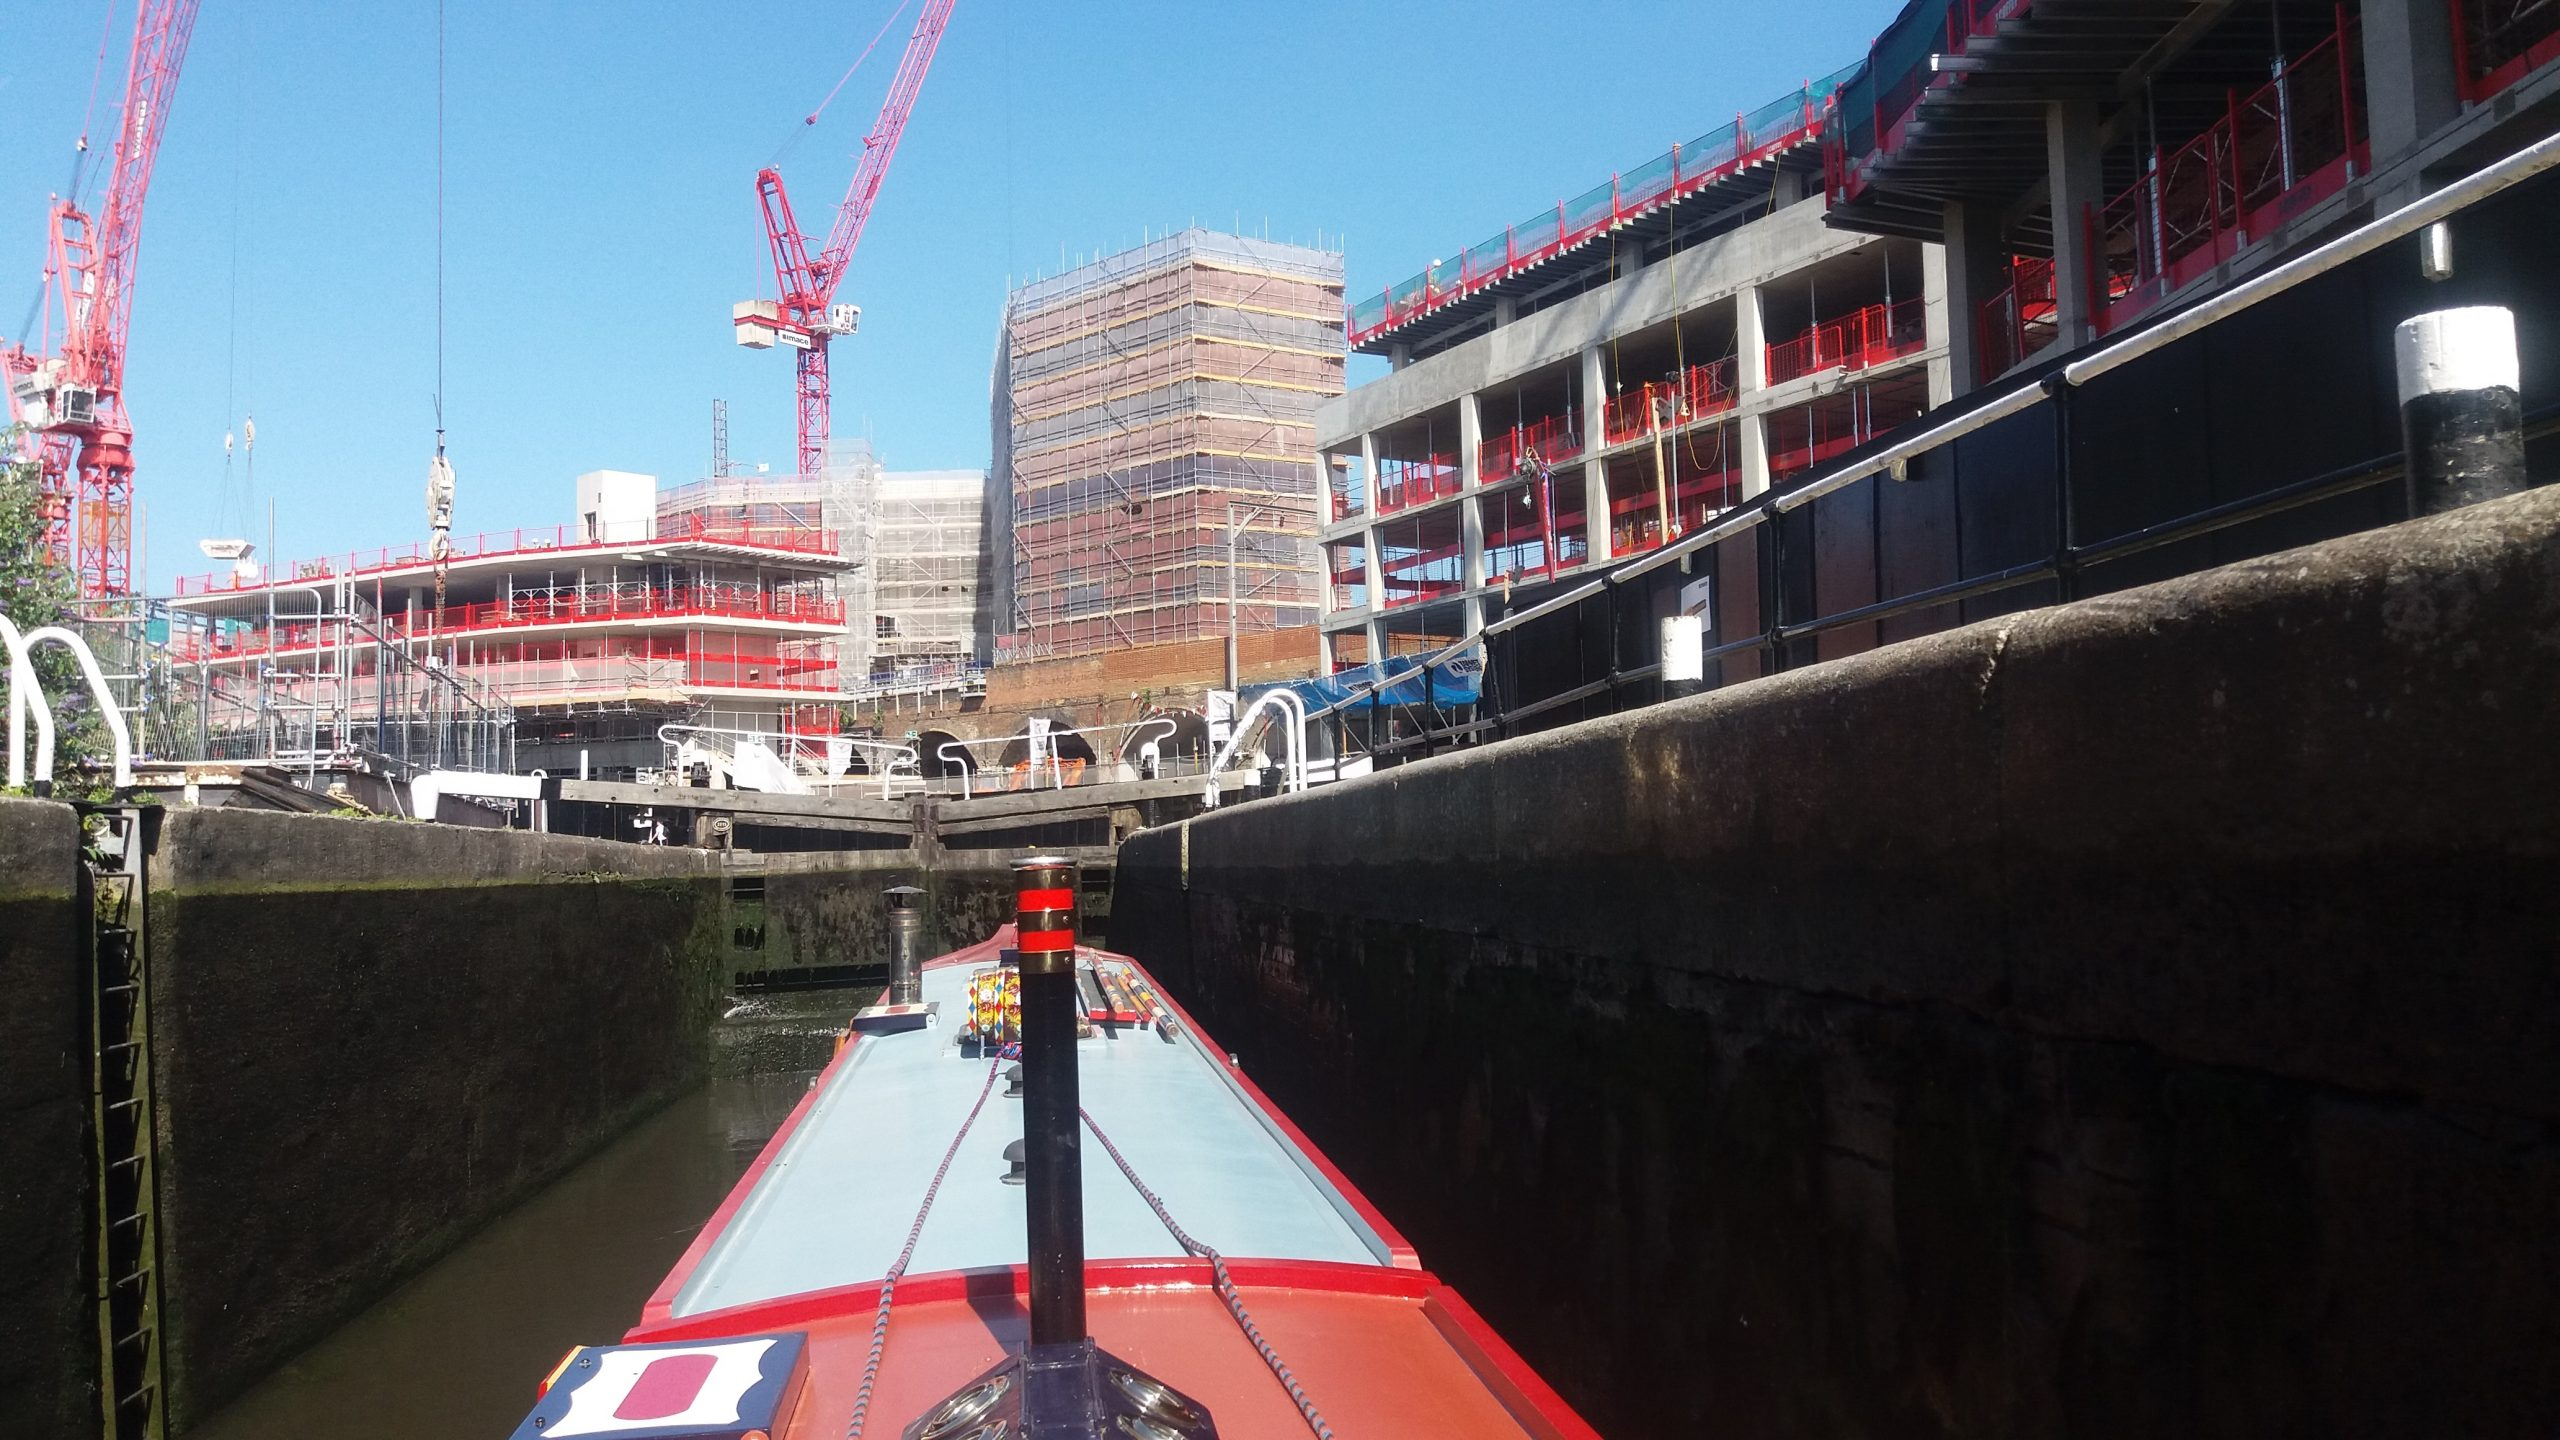 Canal boat moving through the Camden Lock site during construction